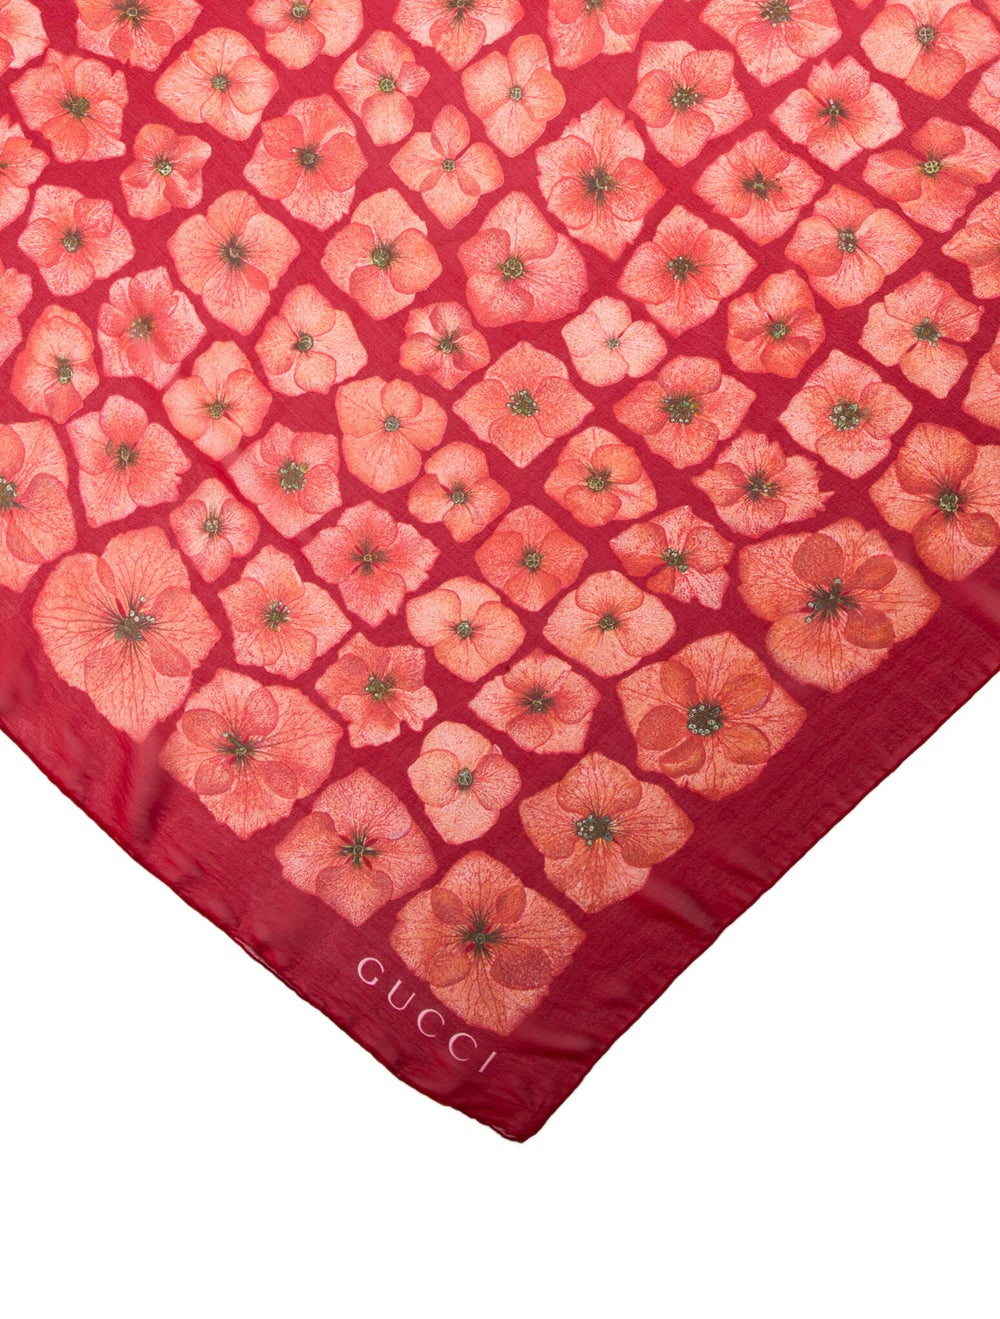 Gucci Silk Floral Scarf Red - image 2